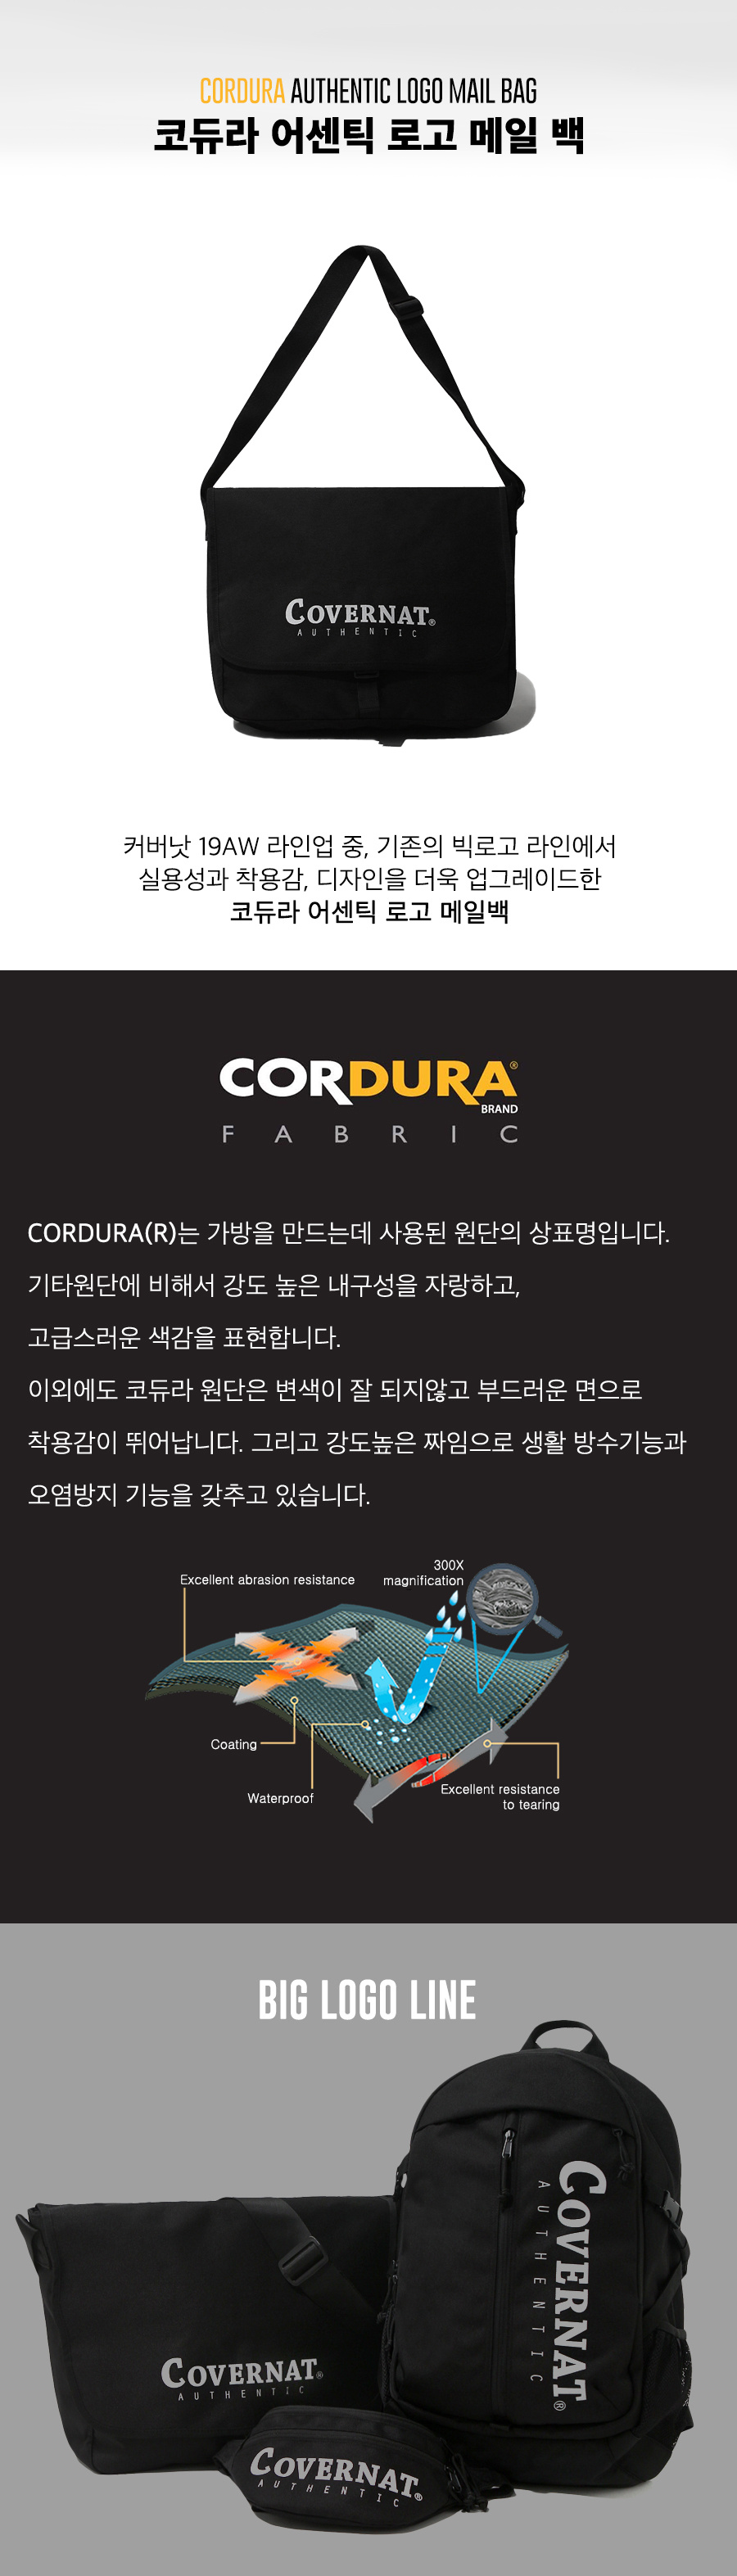 커버낫(COVERNAT) CORDURA  AUTHENTIC LOGO MAIL BAG BLACK